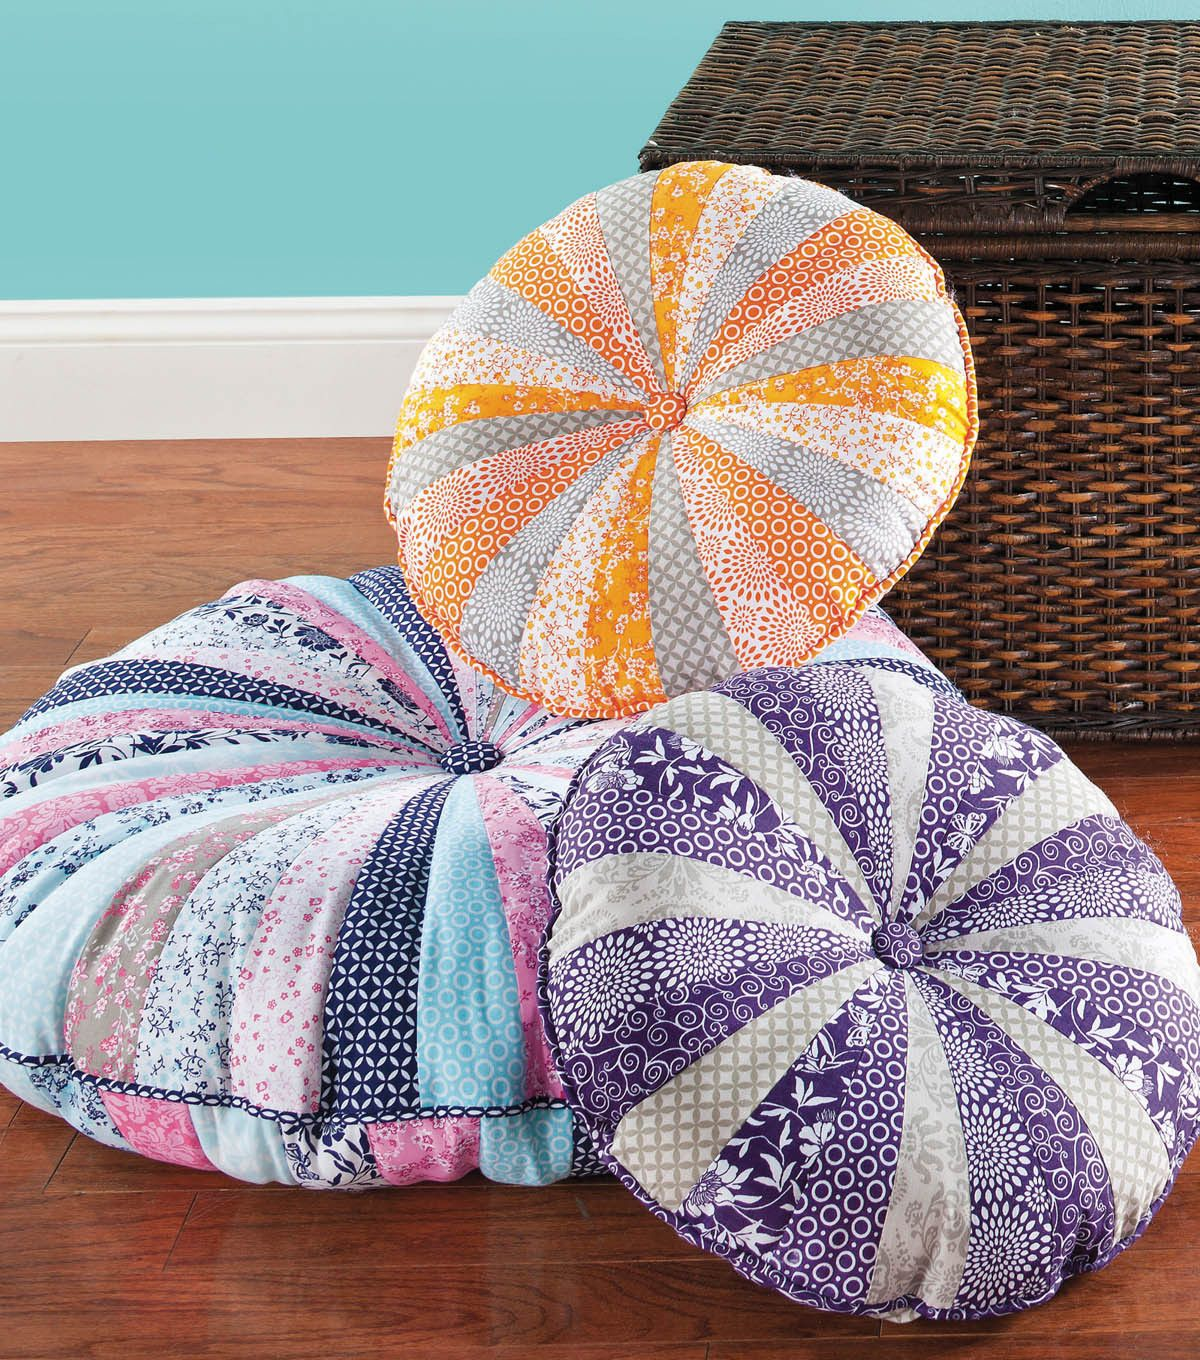 Sew a few of these floor pillows for extra seating or lounging ...